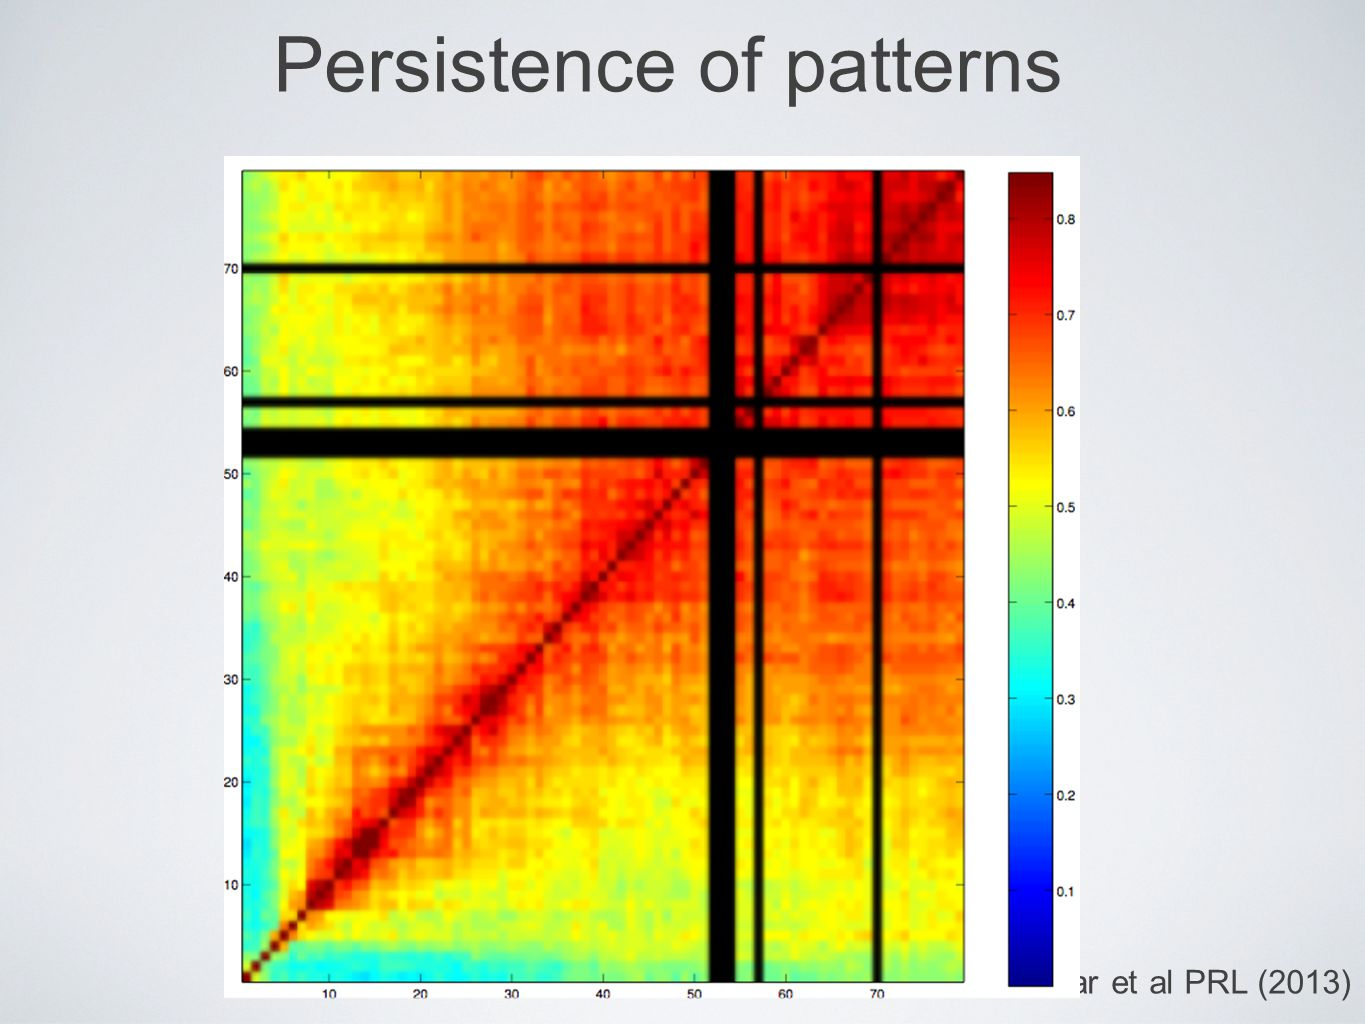 Persistence of patterns